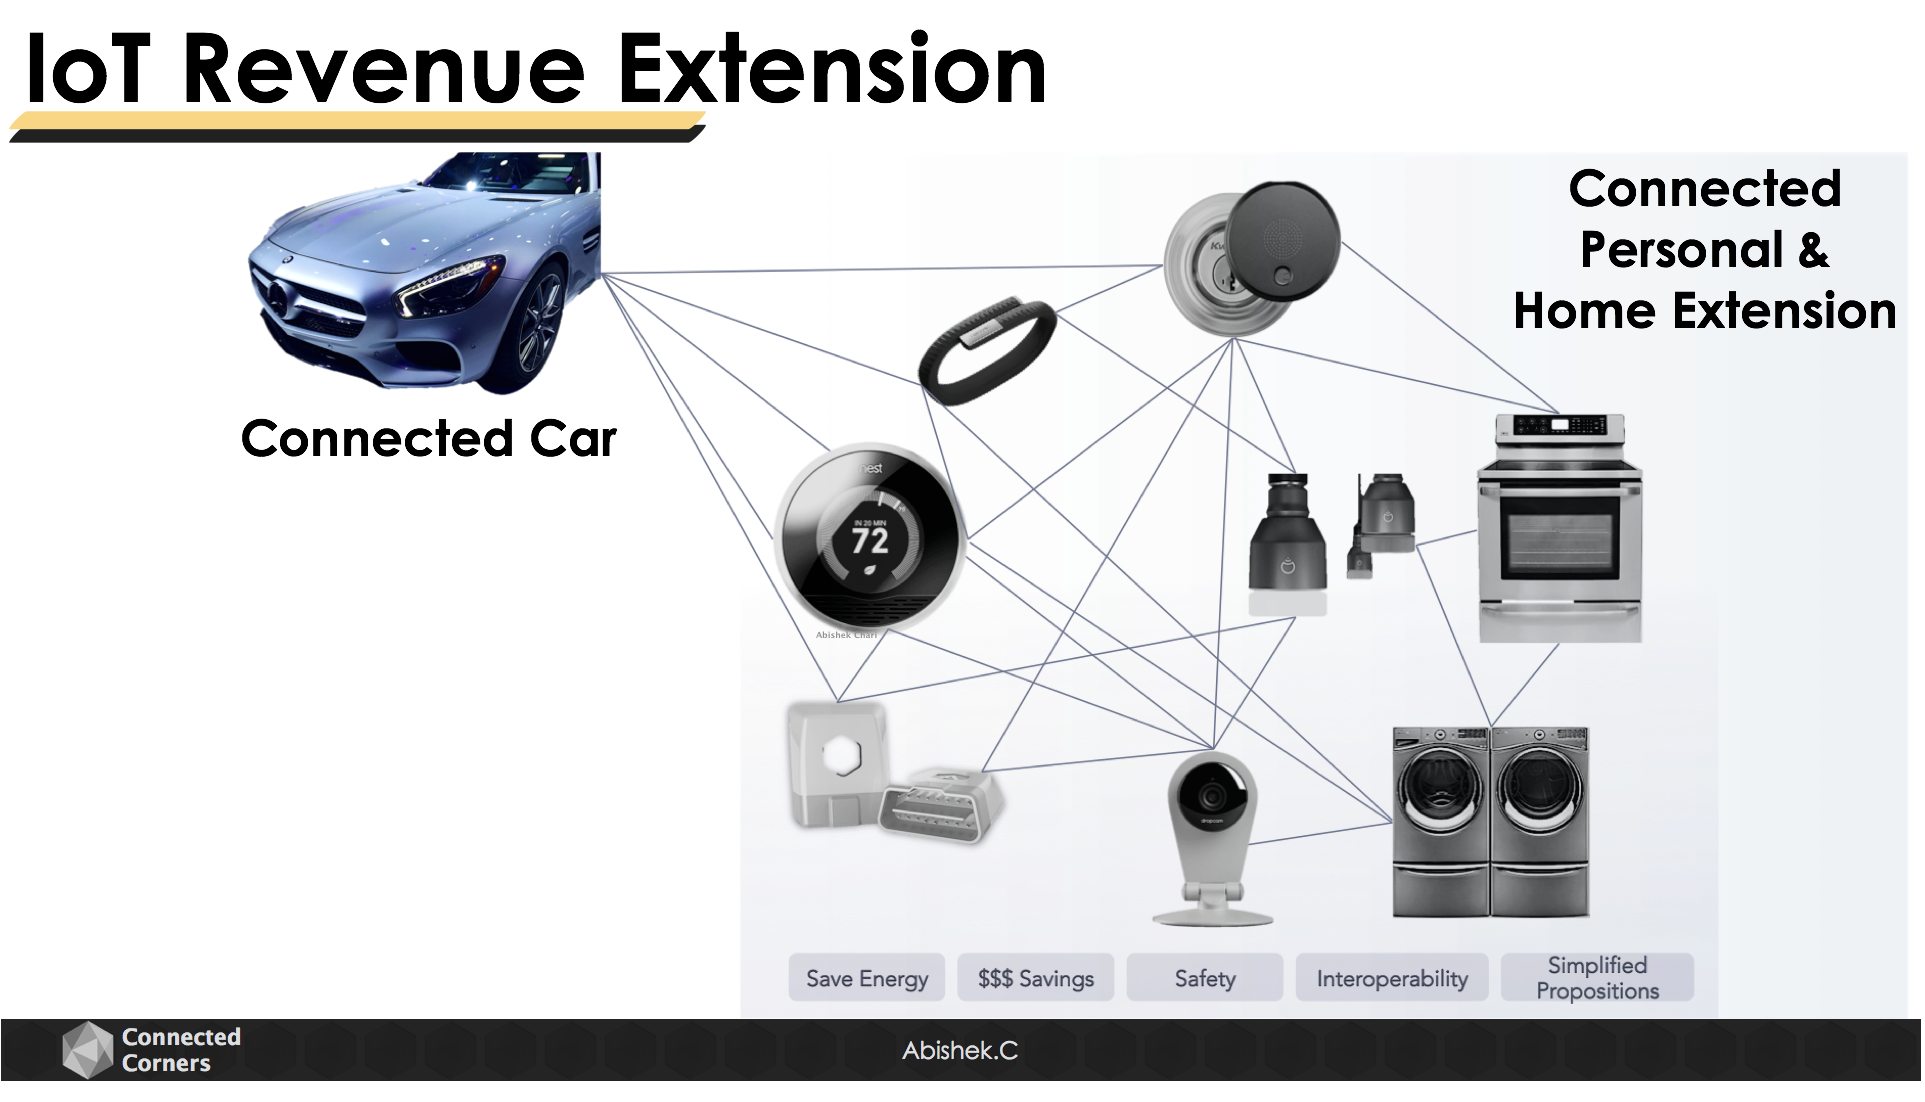 IoT Revenue Extension Connected Vehicle